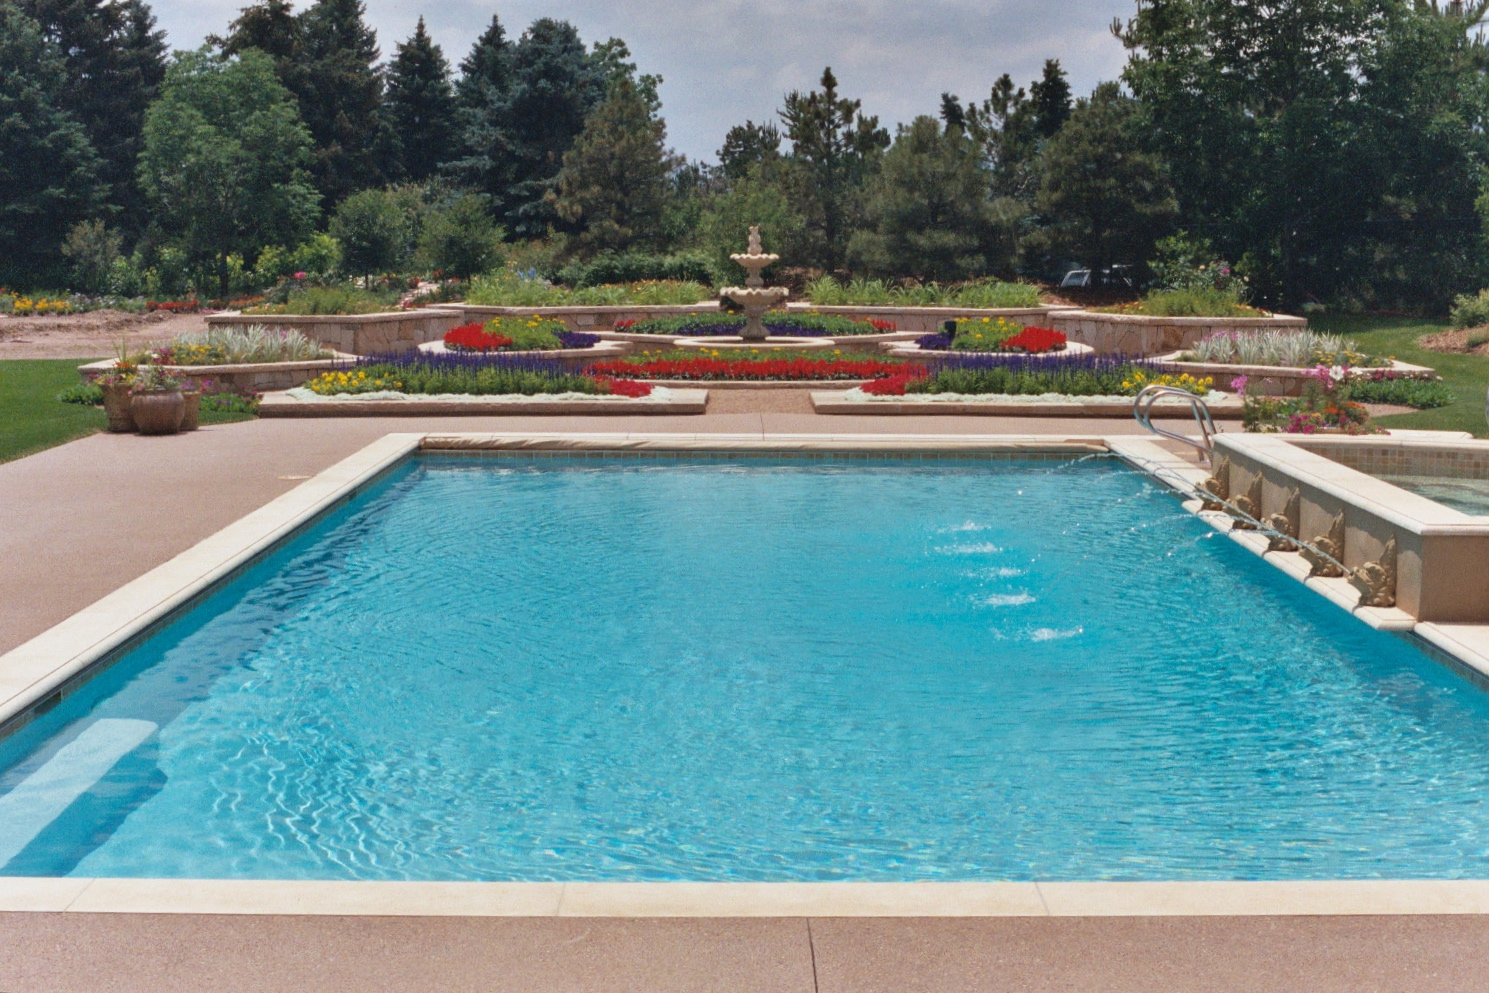 Swimming pool construction pool remodeling denver co for Swimming pool construction